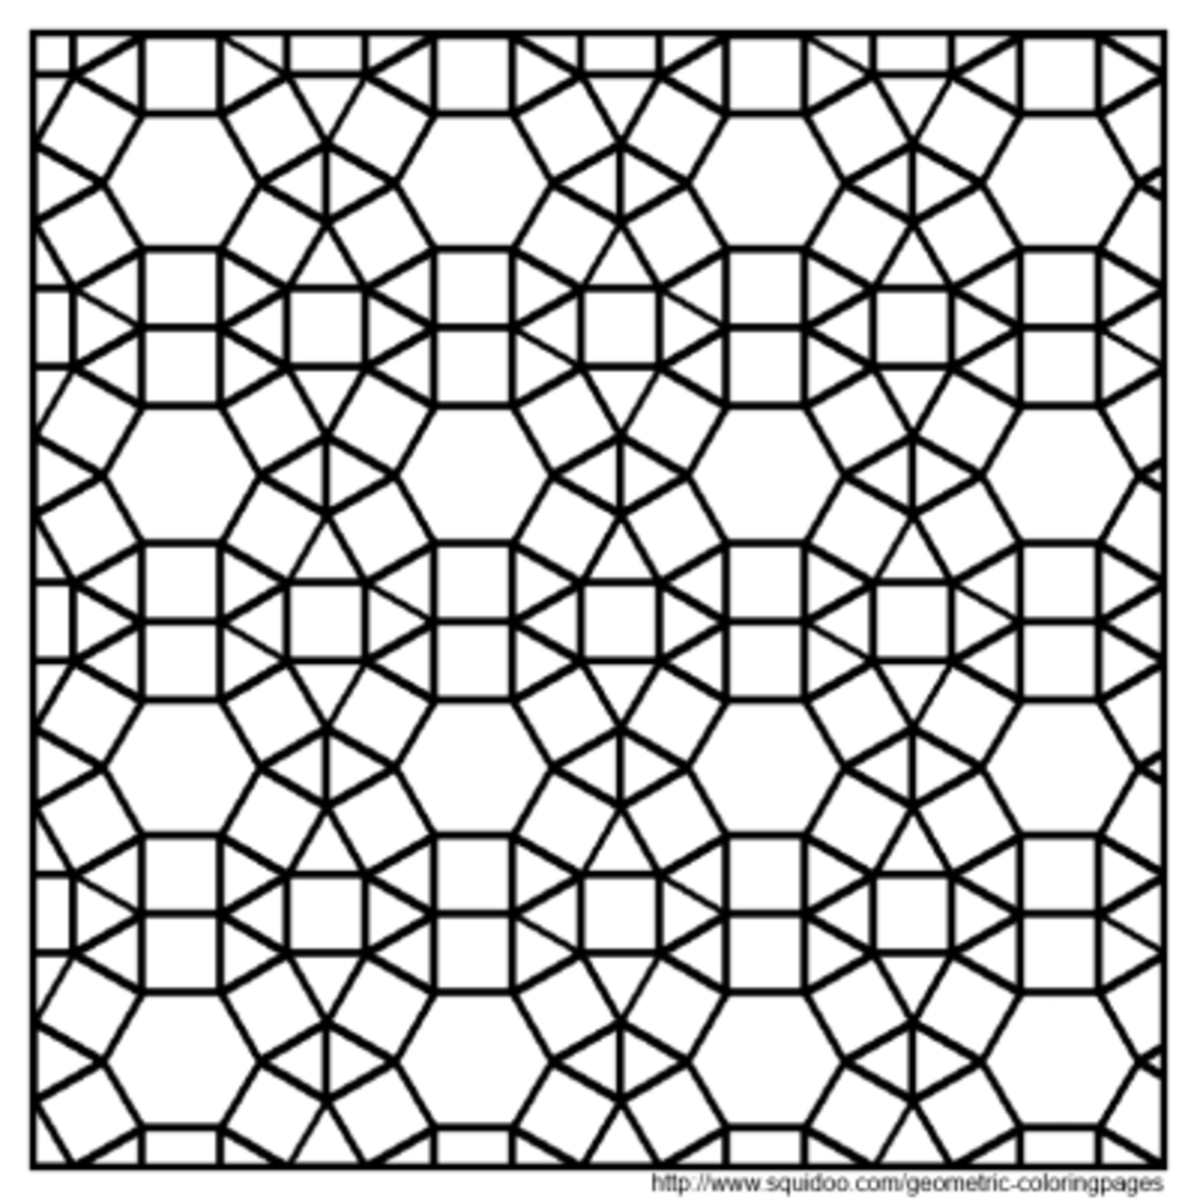 Escher Fish Tessellations Templates Sketch Coloring Page